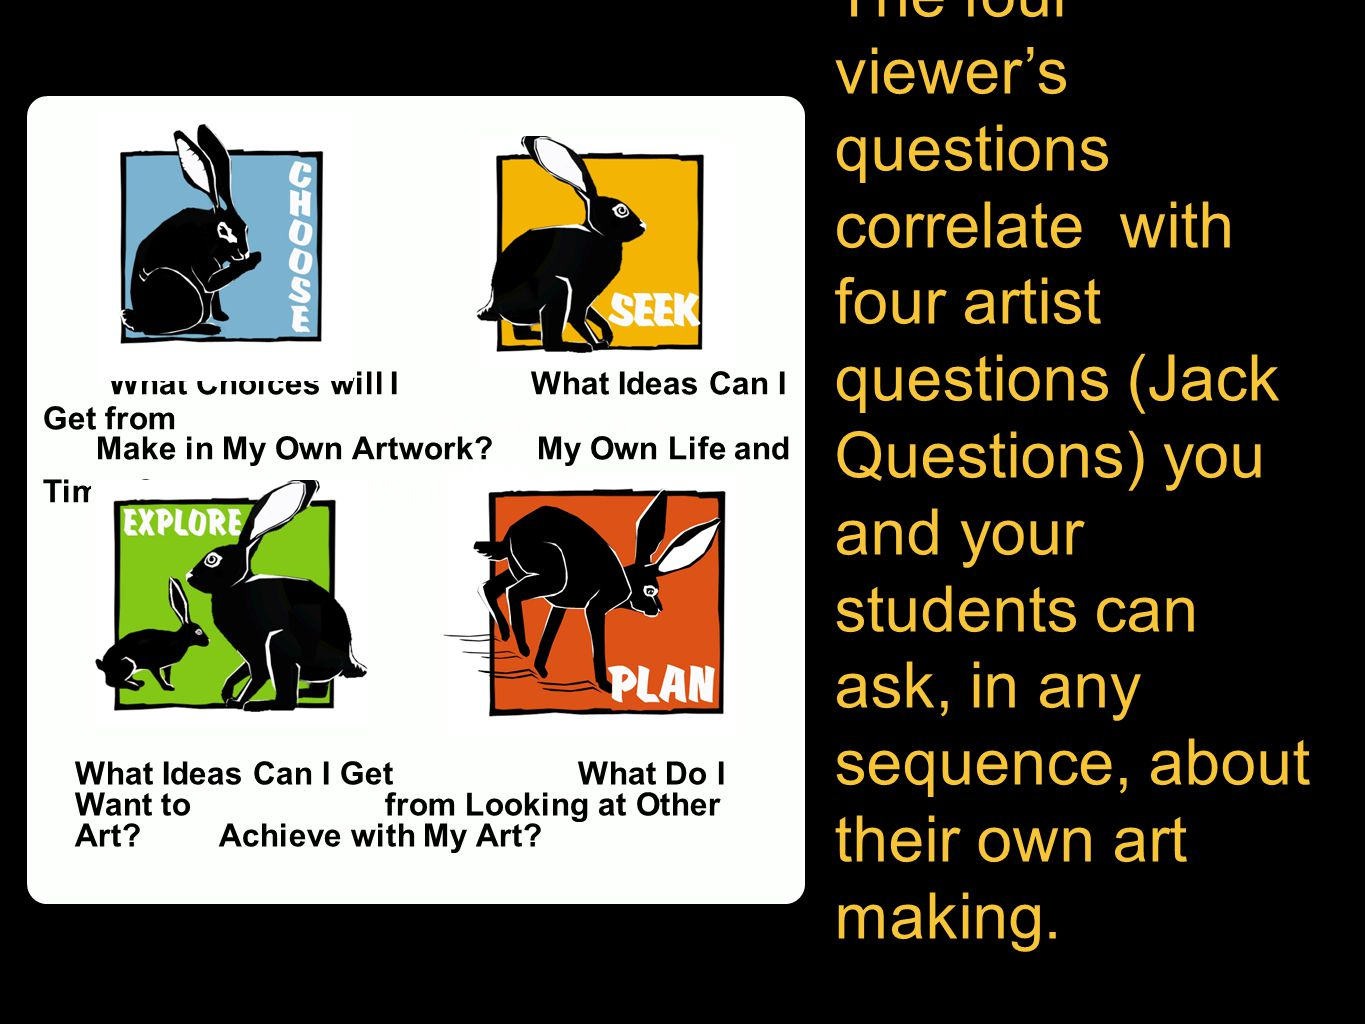 The four viewer's questions correlate with four artist questions (Jack Questions) you and your students can ask, in any sequence, about their own art making.